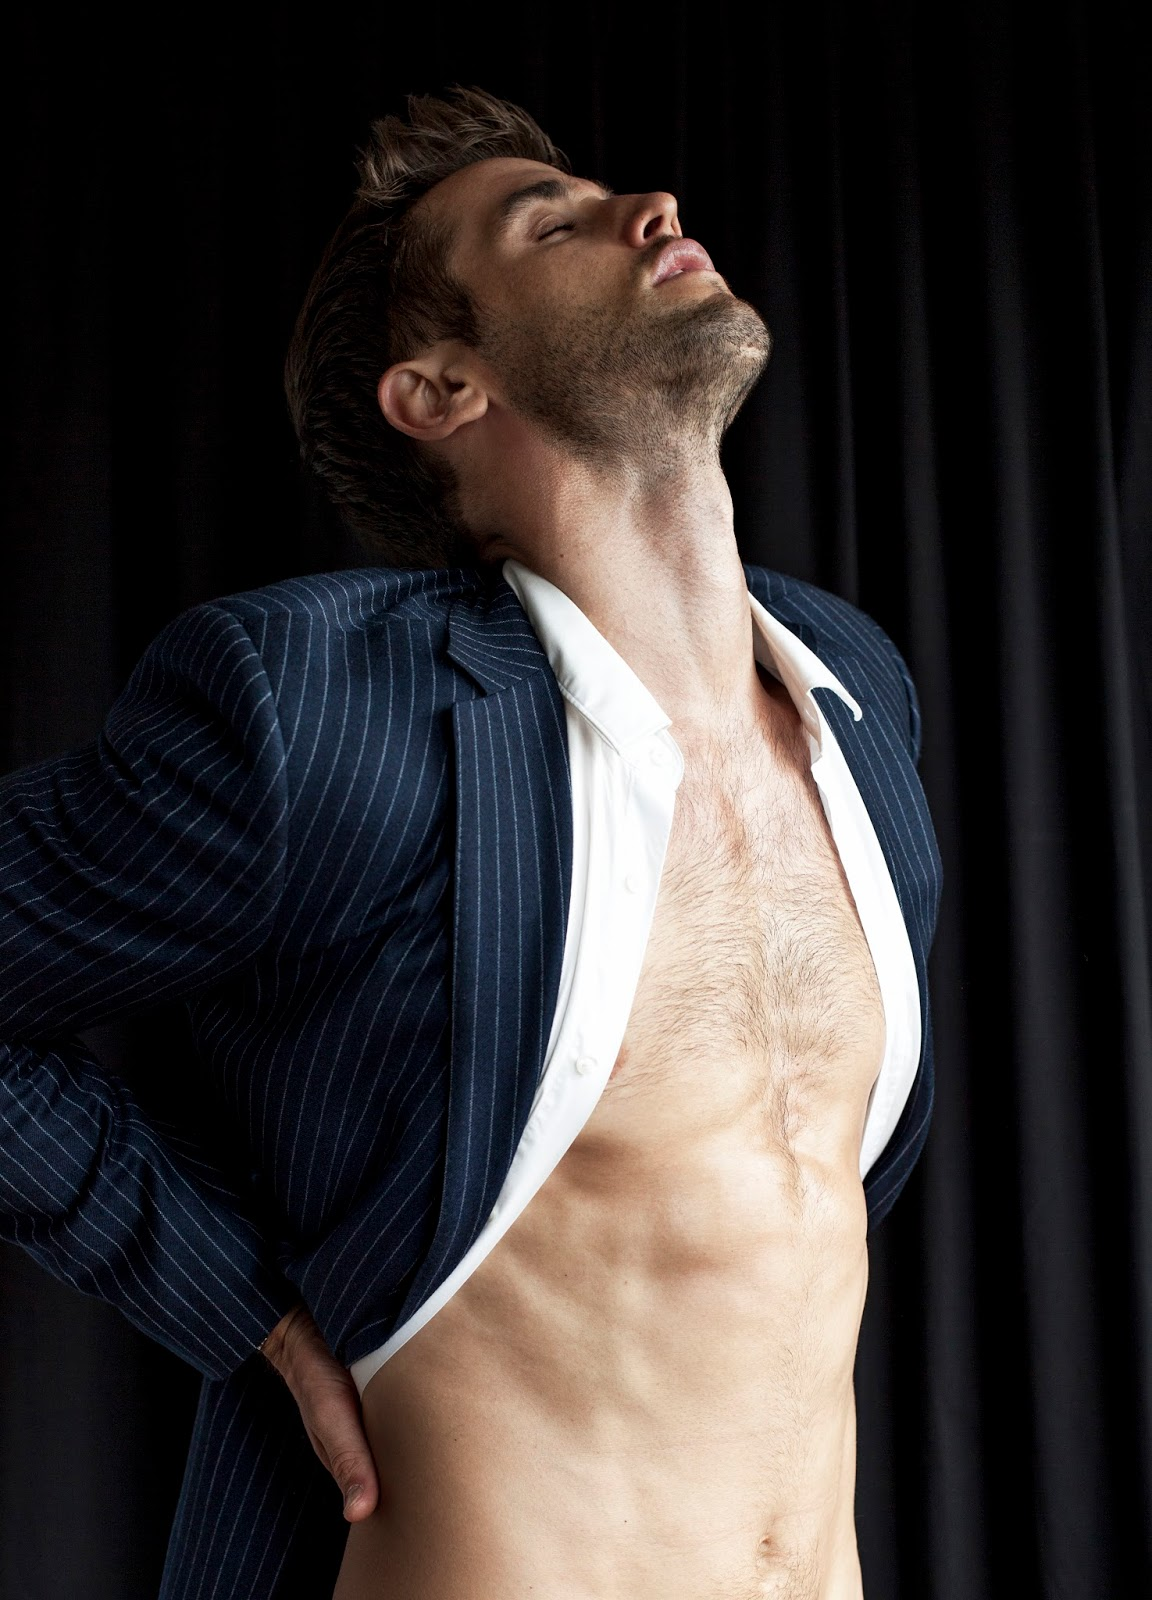 Anyway Enjoy Bryce Thompson In This Shoot I Know You Will Leave A Comment Below If You Have A Thing For Gorgeous Men In Suits